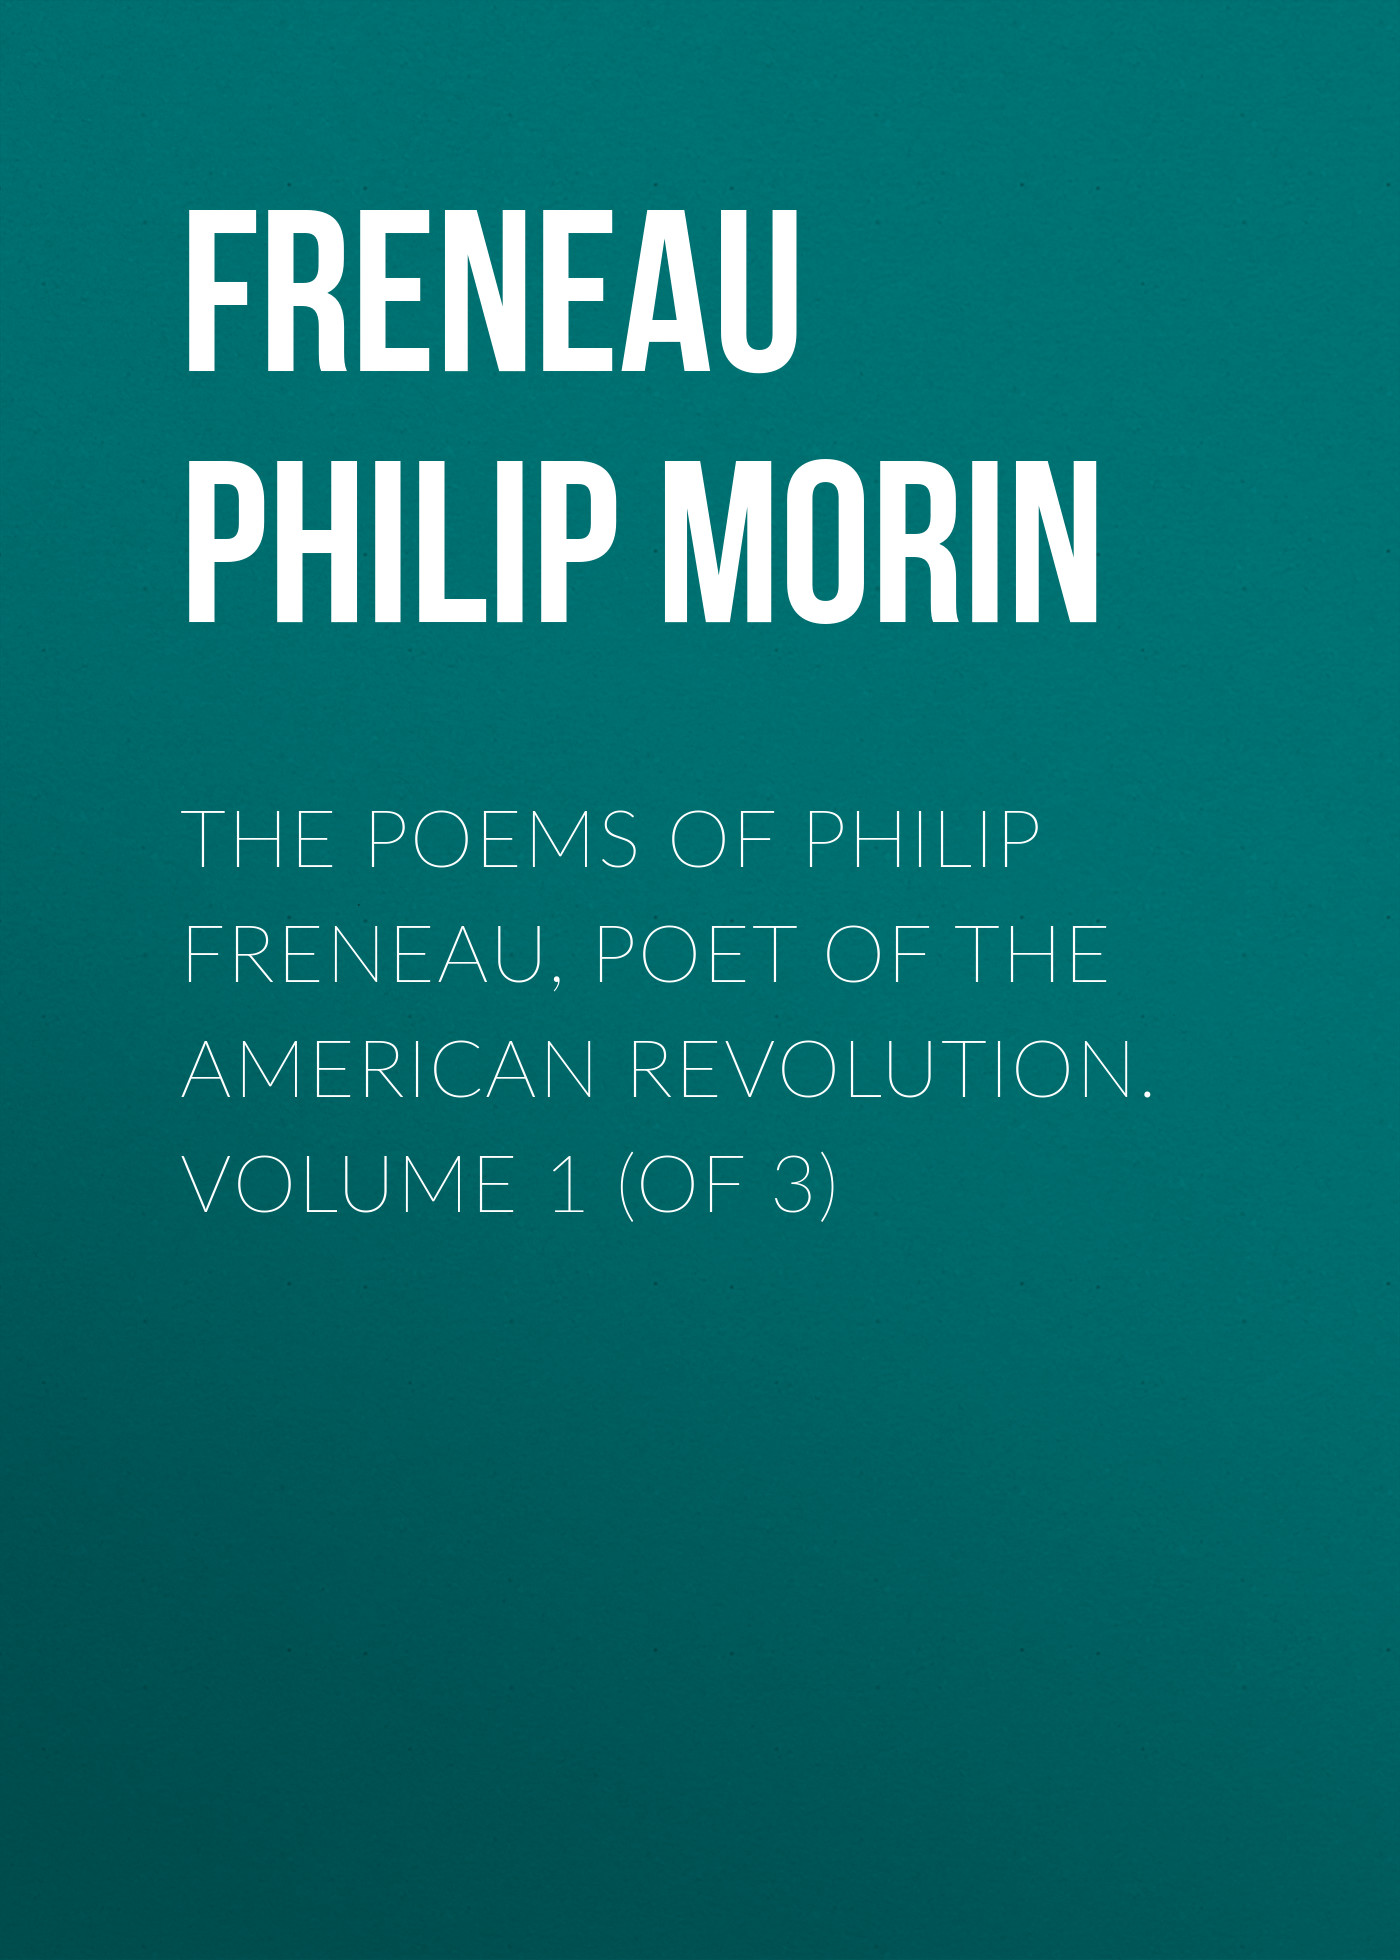 Freneau Philip Morin The Poems of Philip Freneau, Poet of the American Revolution. Volume 1 (of 3) цена